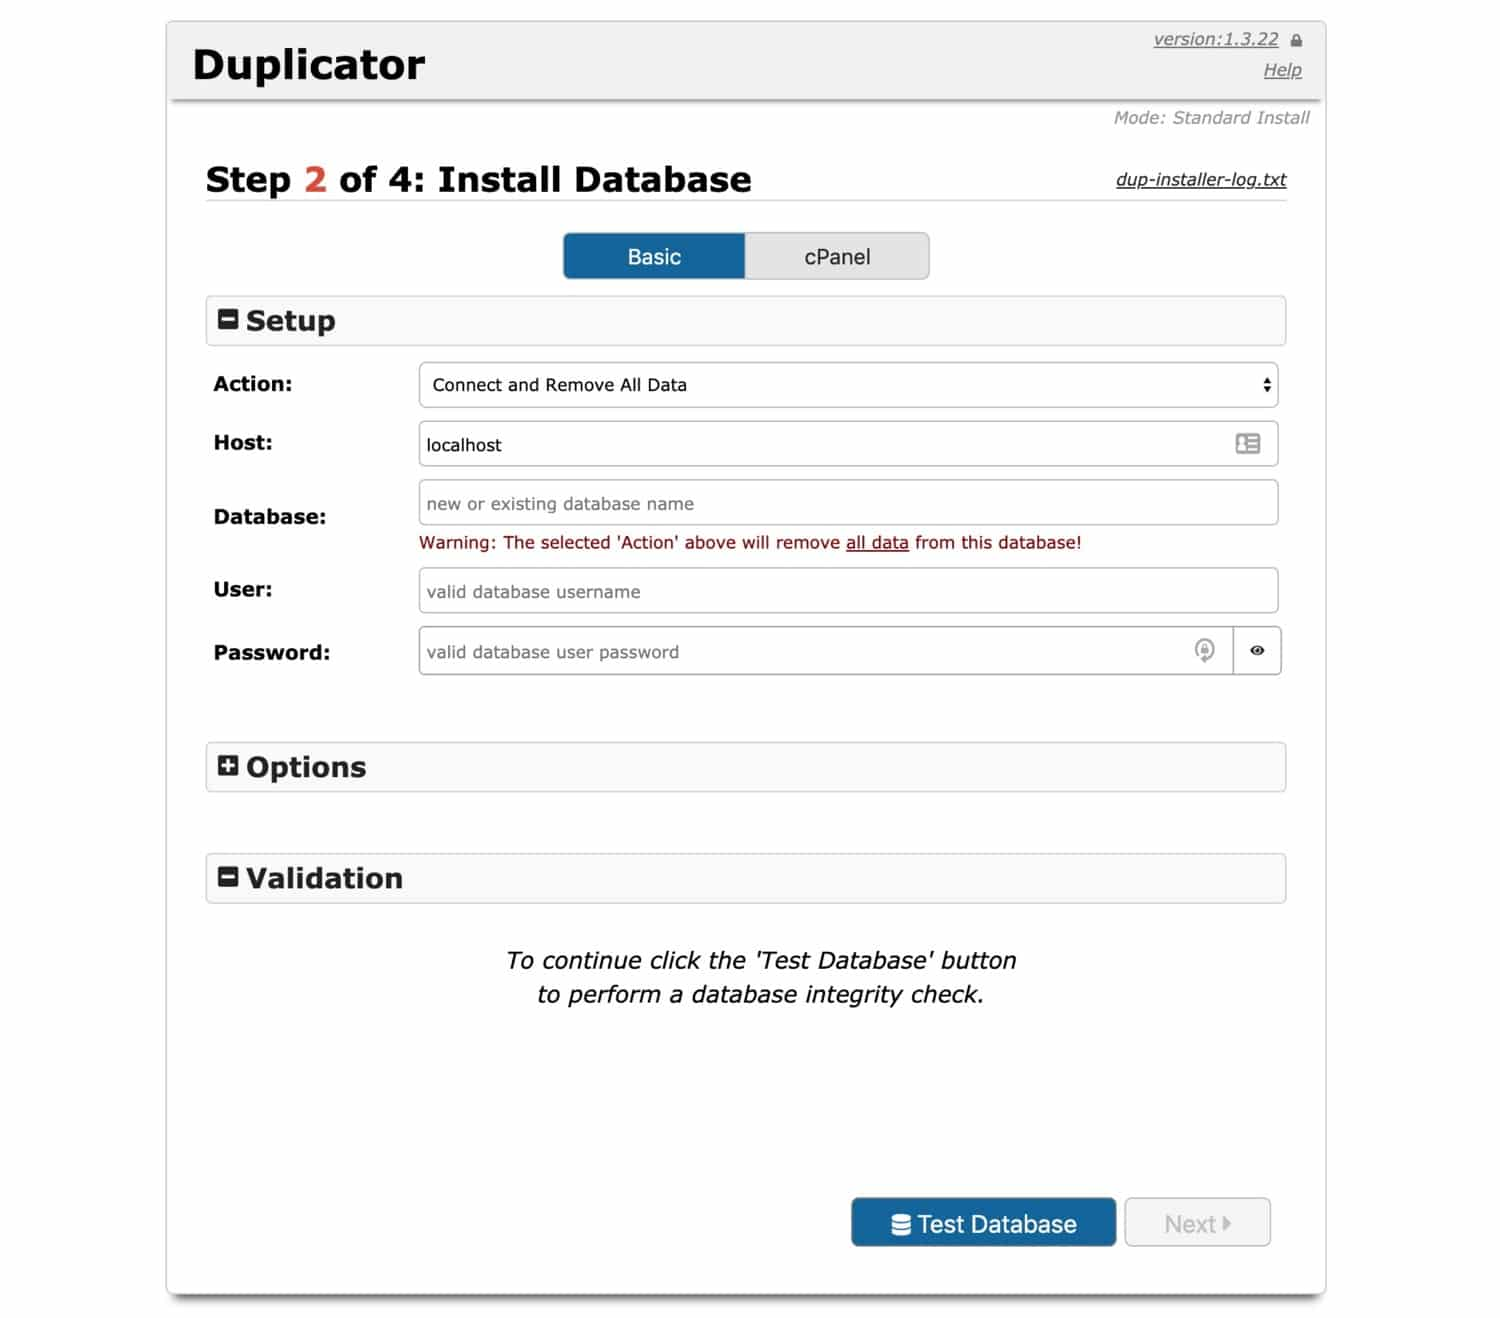 Creating the database in duplicator